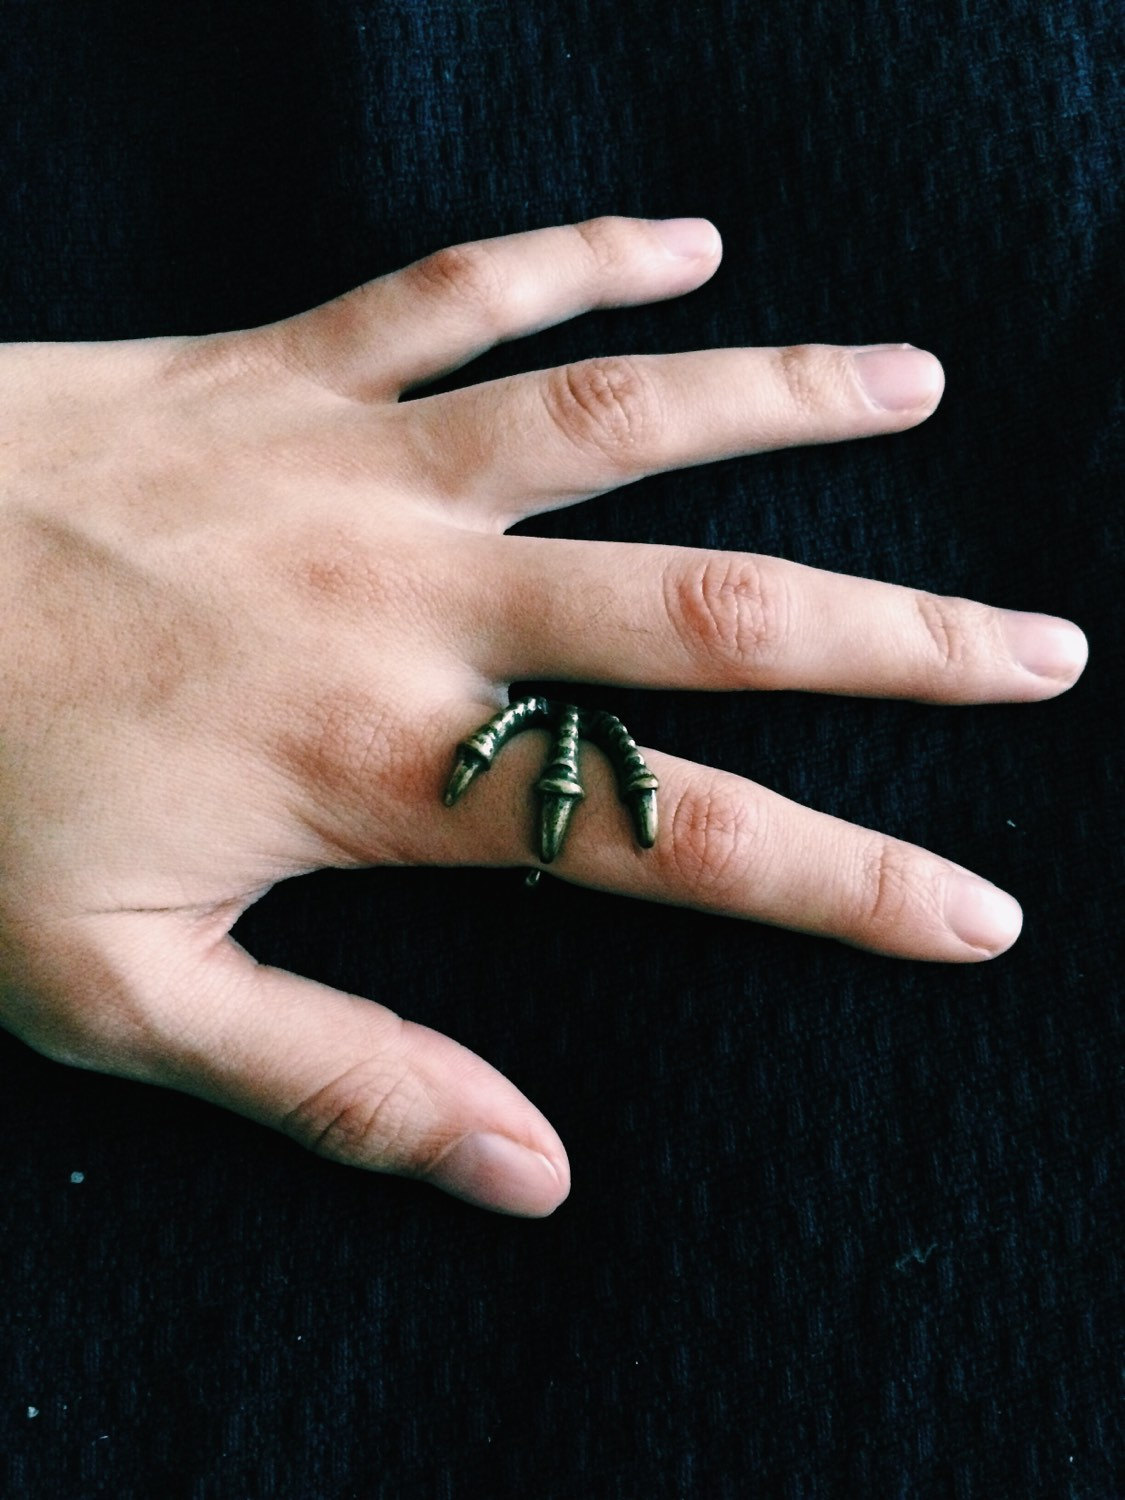 New bronze vintage retro style punk eagle bird claw talon ring rings diameter 1.7cm; circunference 60mm